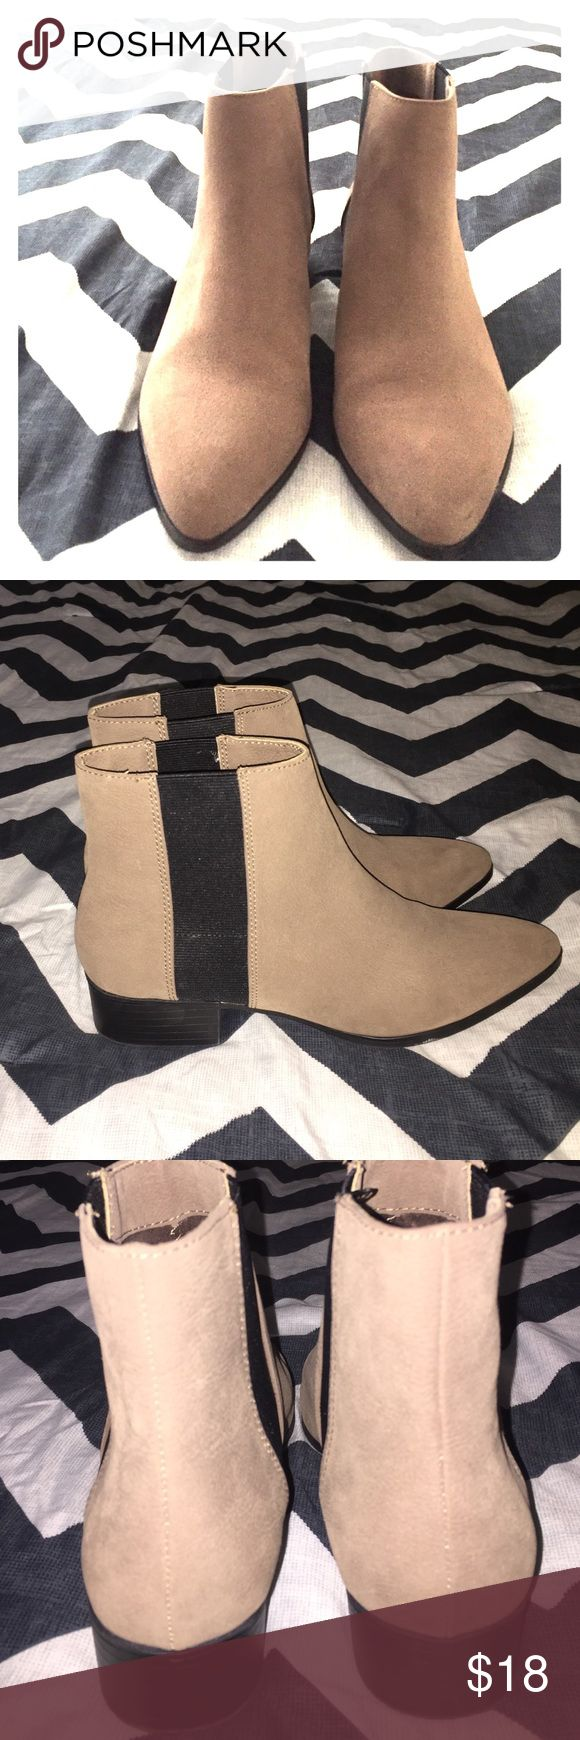 Women's Chelsea Boot Light tan black base boot. Worn only once in excellent condition. H&M Shoes Ankle Boots & Booties